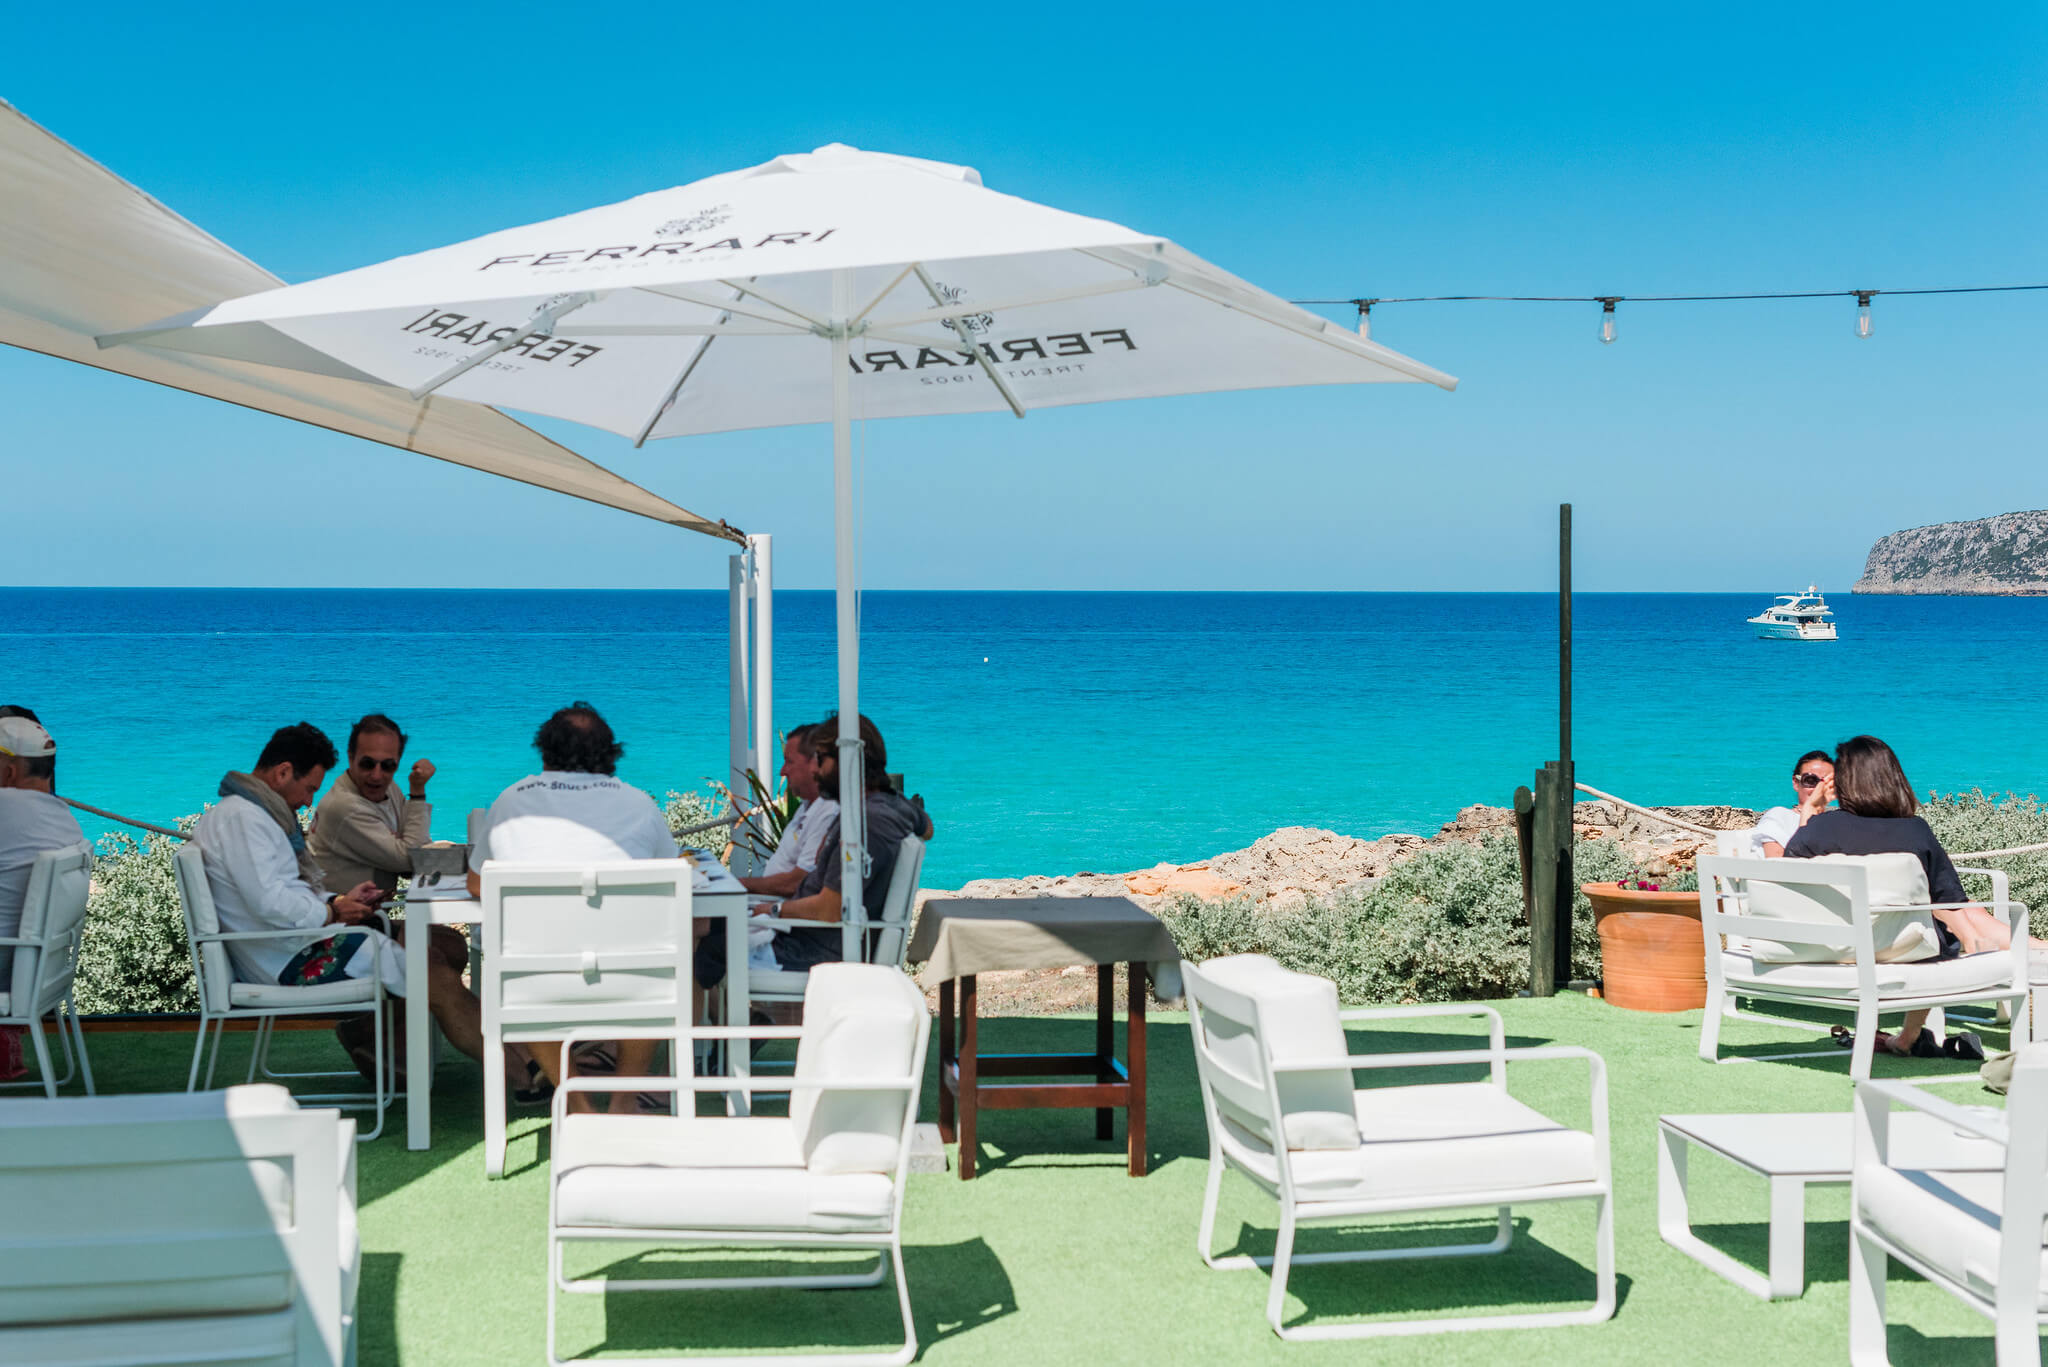 https://www.white-ibiza.com/wp-content/uploads/2020/03/formentera-beach-restaurants-es-calo-2020-05.jpg